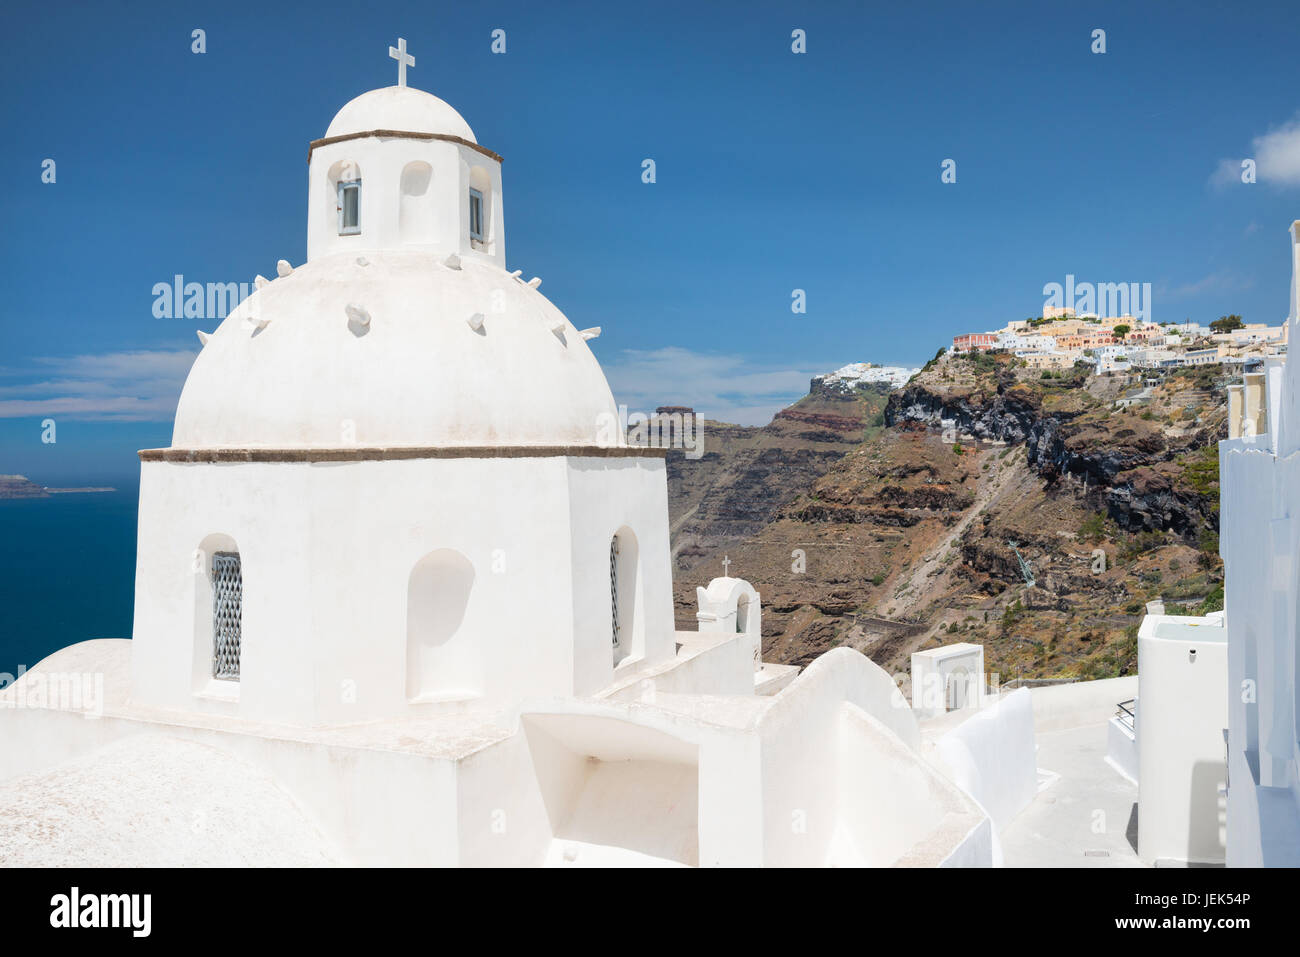 White cupola of church with Firostefani and Imerovigli villages in background, Santorini, Greece - Stock Image